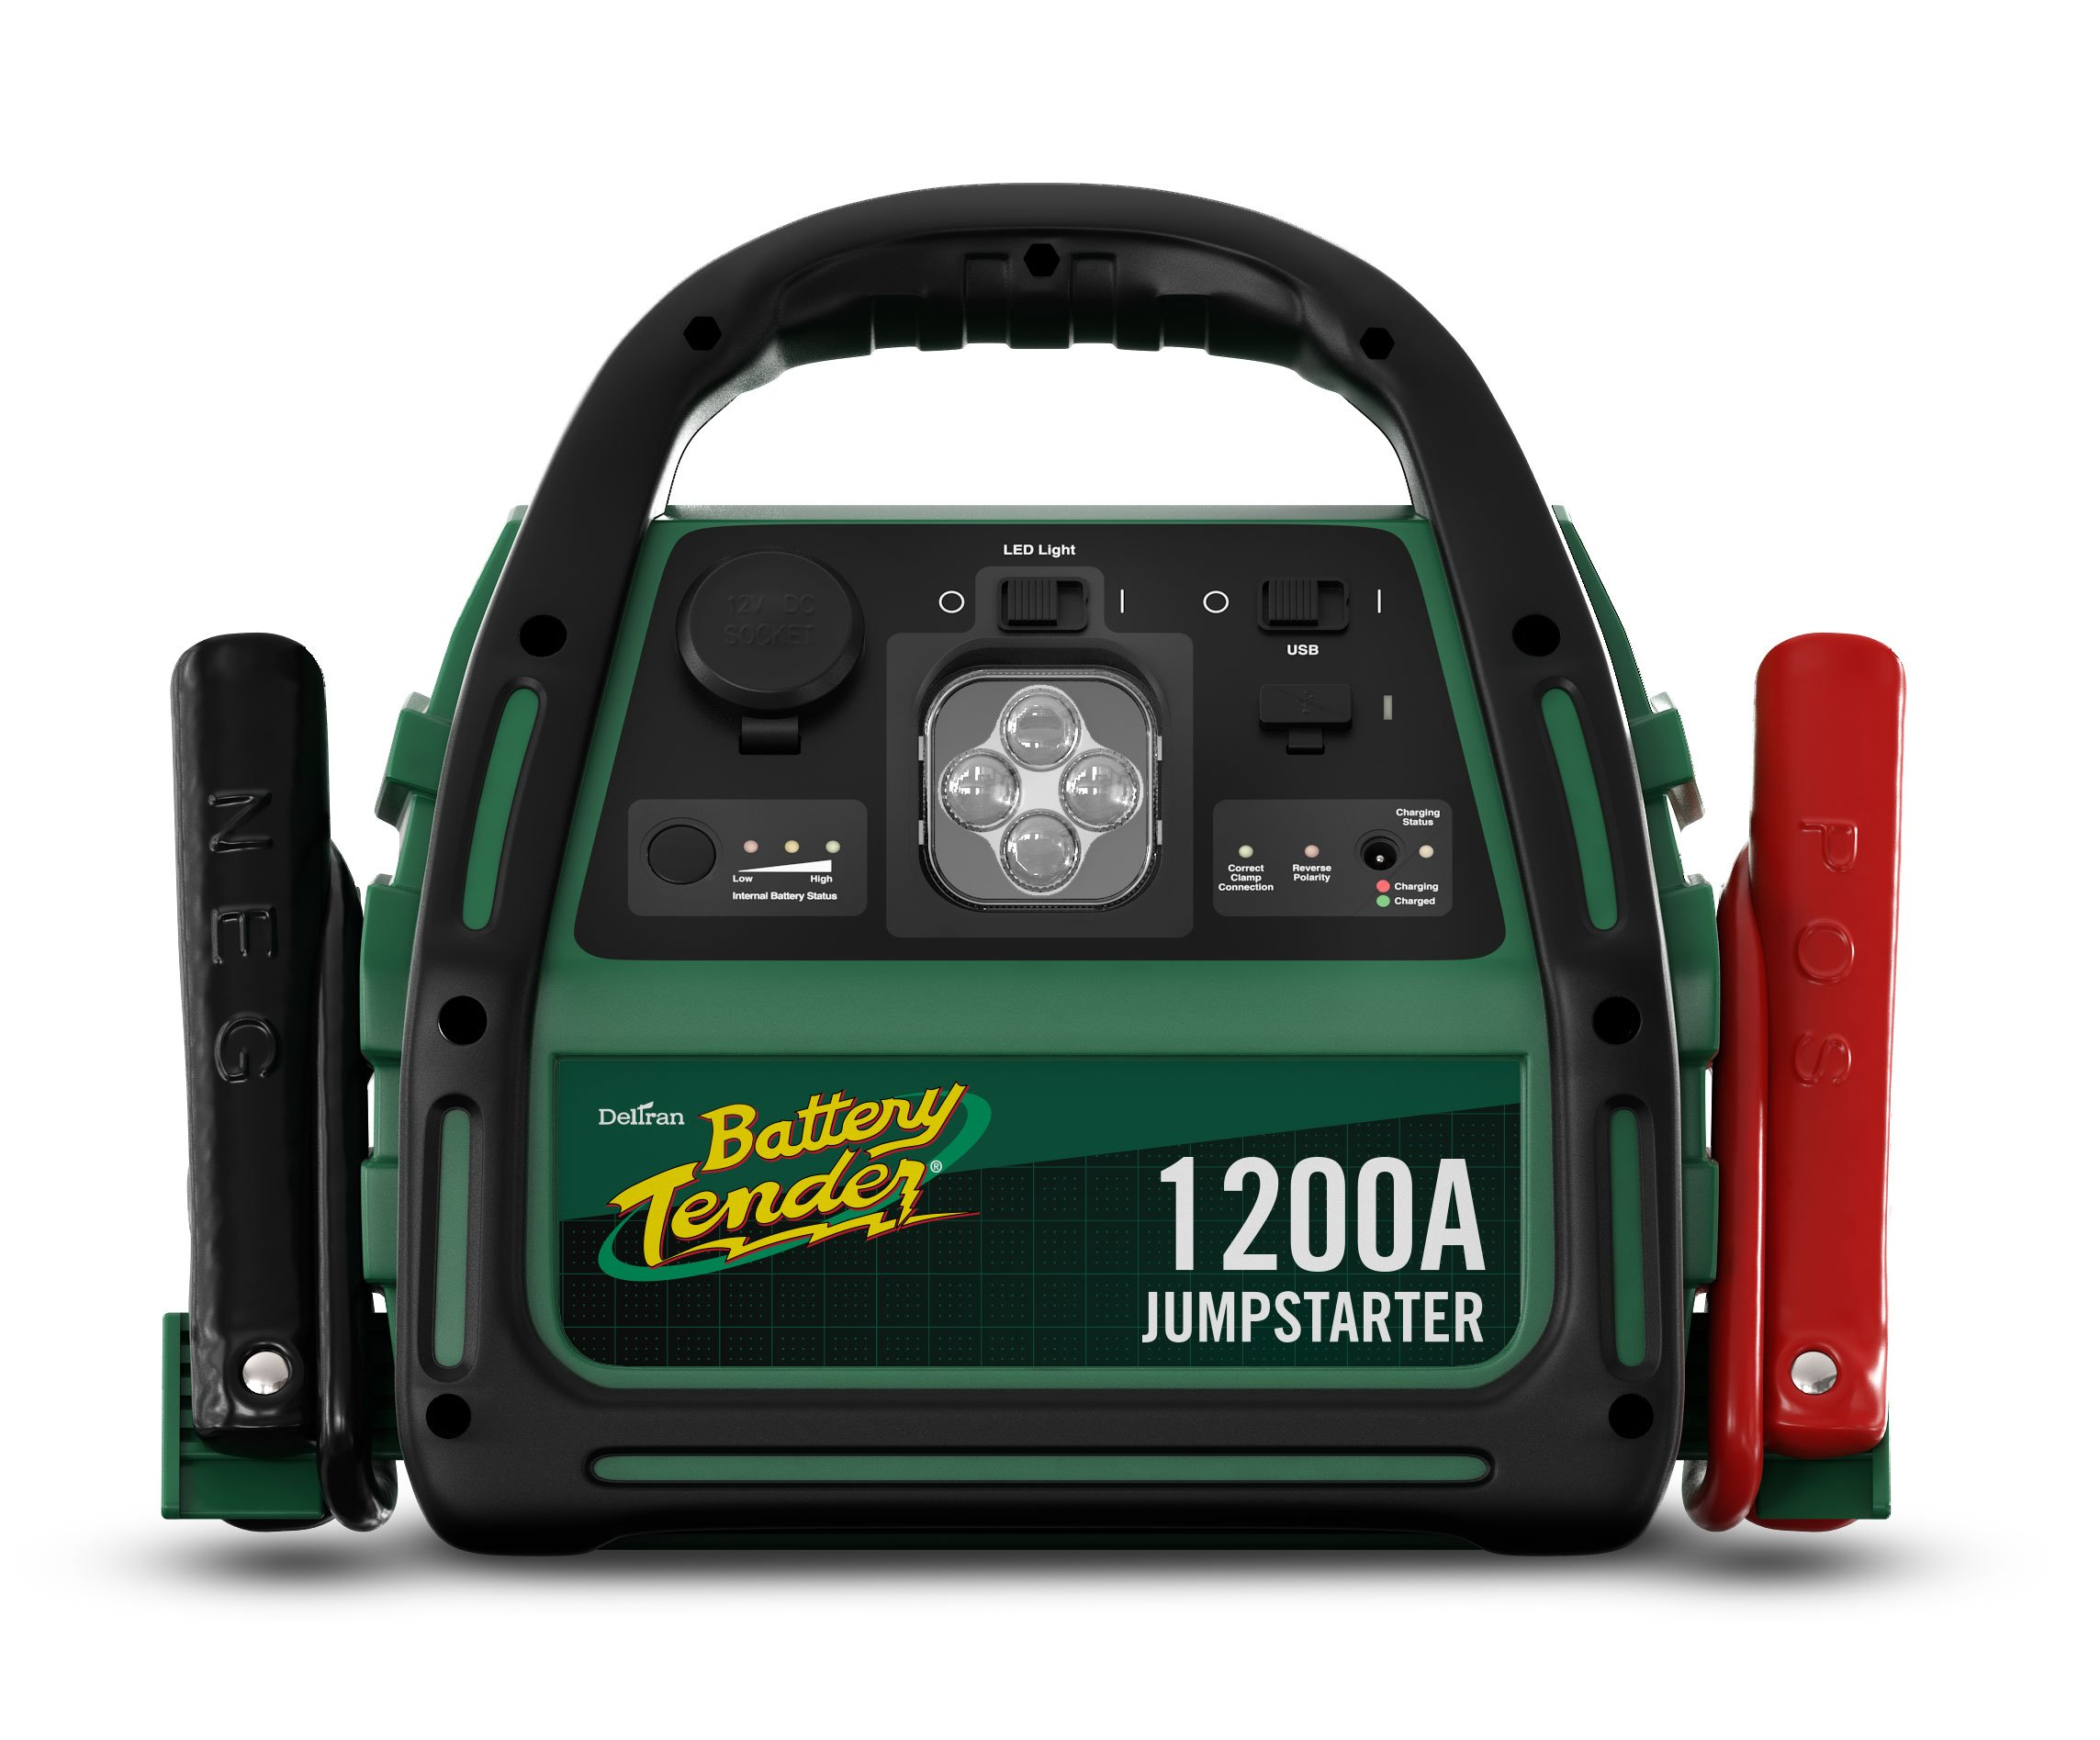 Battery Tender 1200 Peak Amp AGM Car Jump Starter with 2100A USB Ports to Charge Mobile Devices and 12V DC socket to Power Other Accessories by Battery Tender (Image #1)